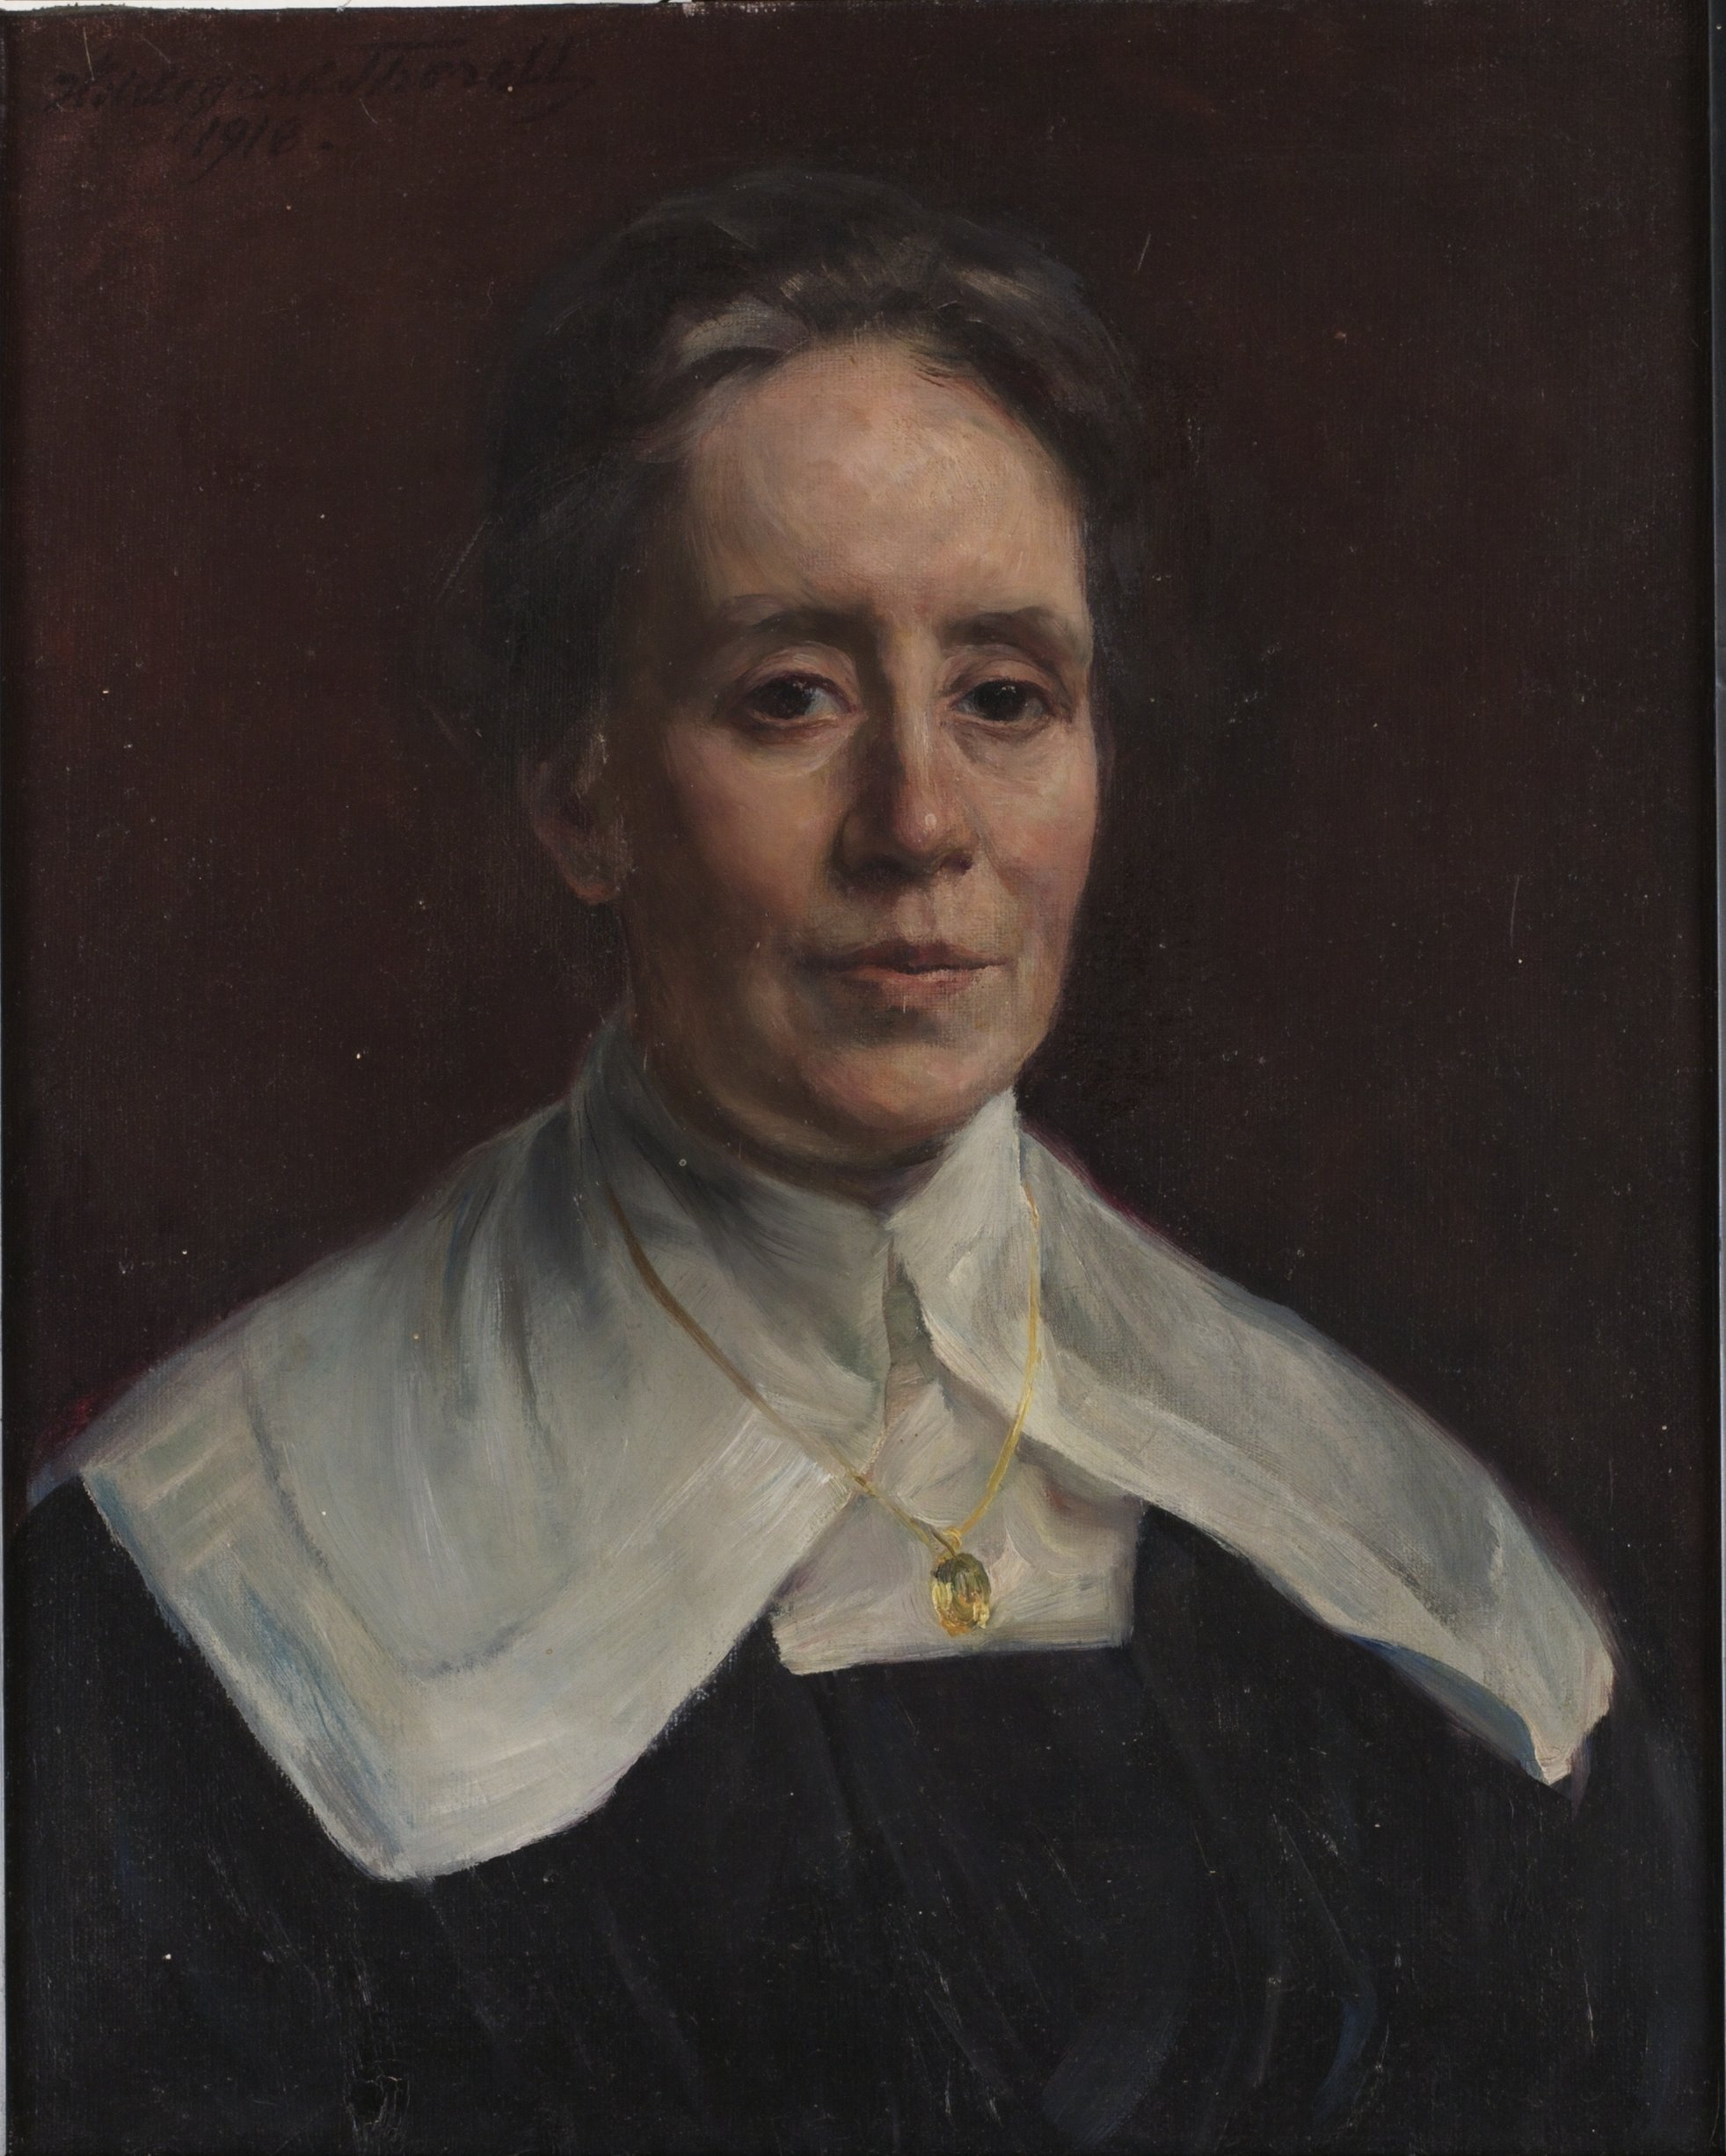 Fanny Brate painted 1918 by Hildegard Thorell (1850-1930). Image source: Wikimedia Commons